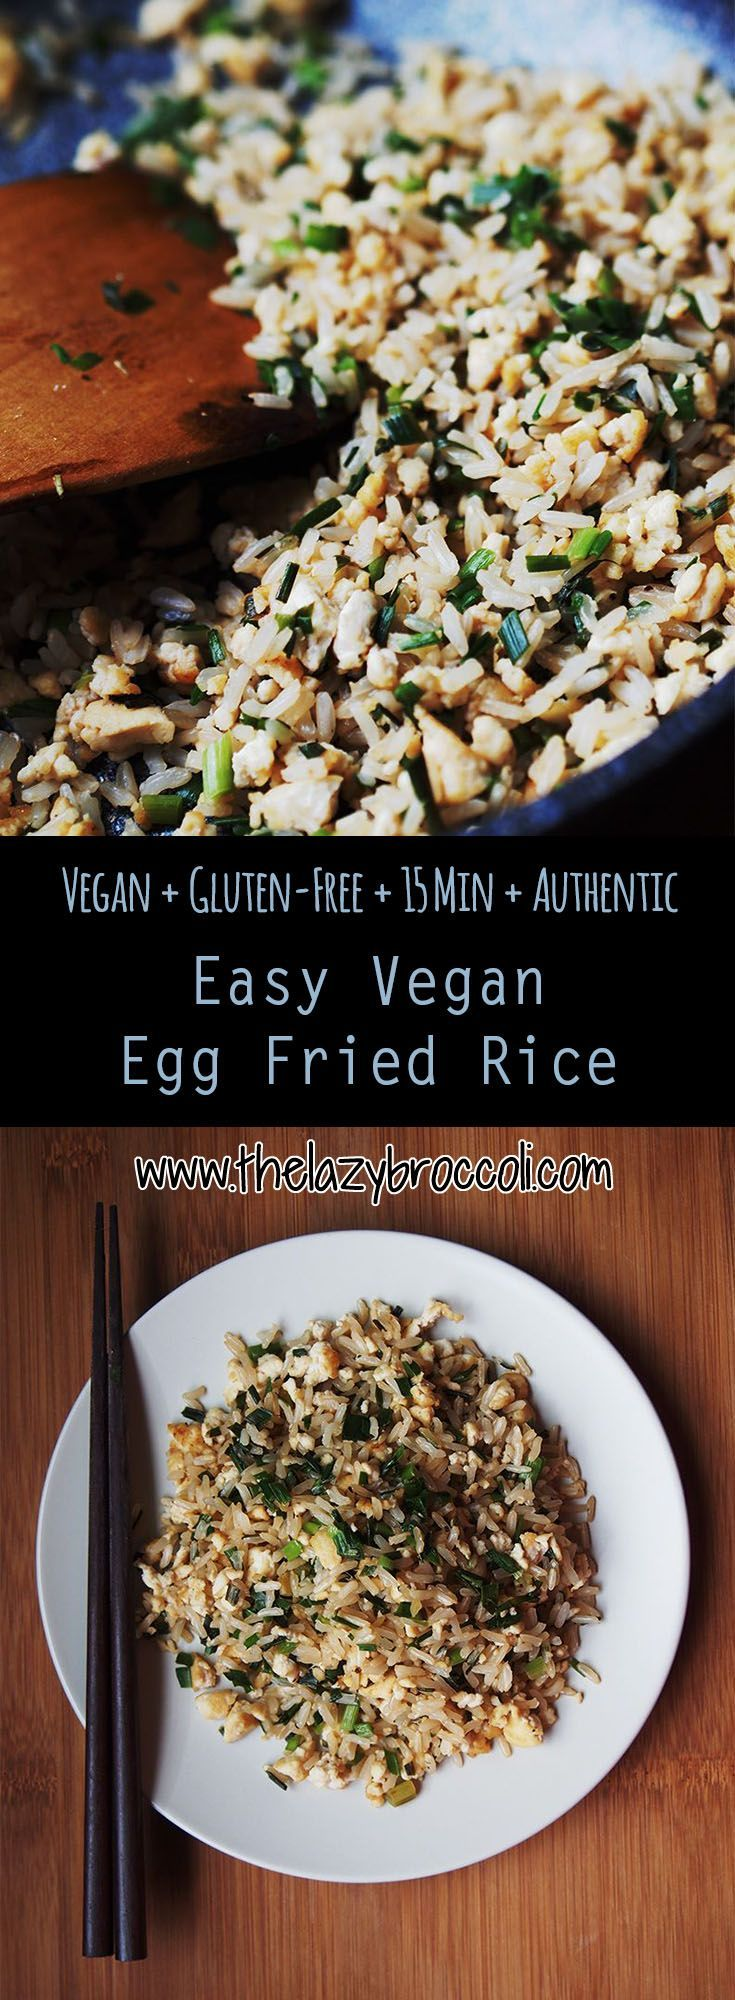 This vegan, gluten free 'egg' fried rice is an authentic basic Chinese-style fried rice recipe and the best part is it only takes 15 minutes to make! You only need brown rice, tofu, chives (or spring onions) and some soy sauce - super easy, affordable, and plate-licking good :)